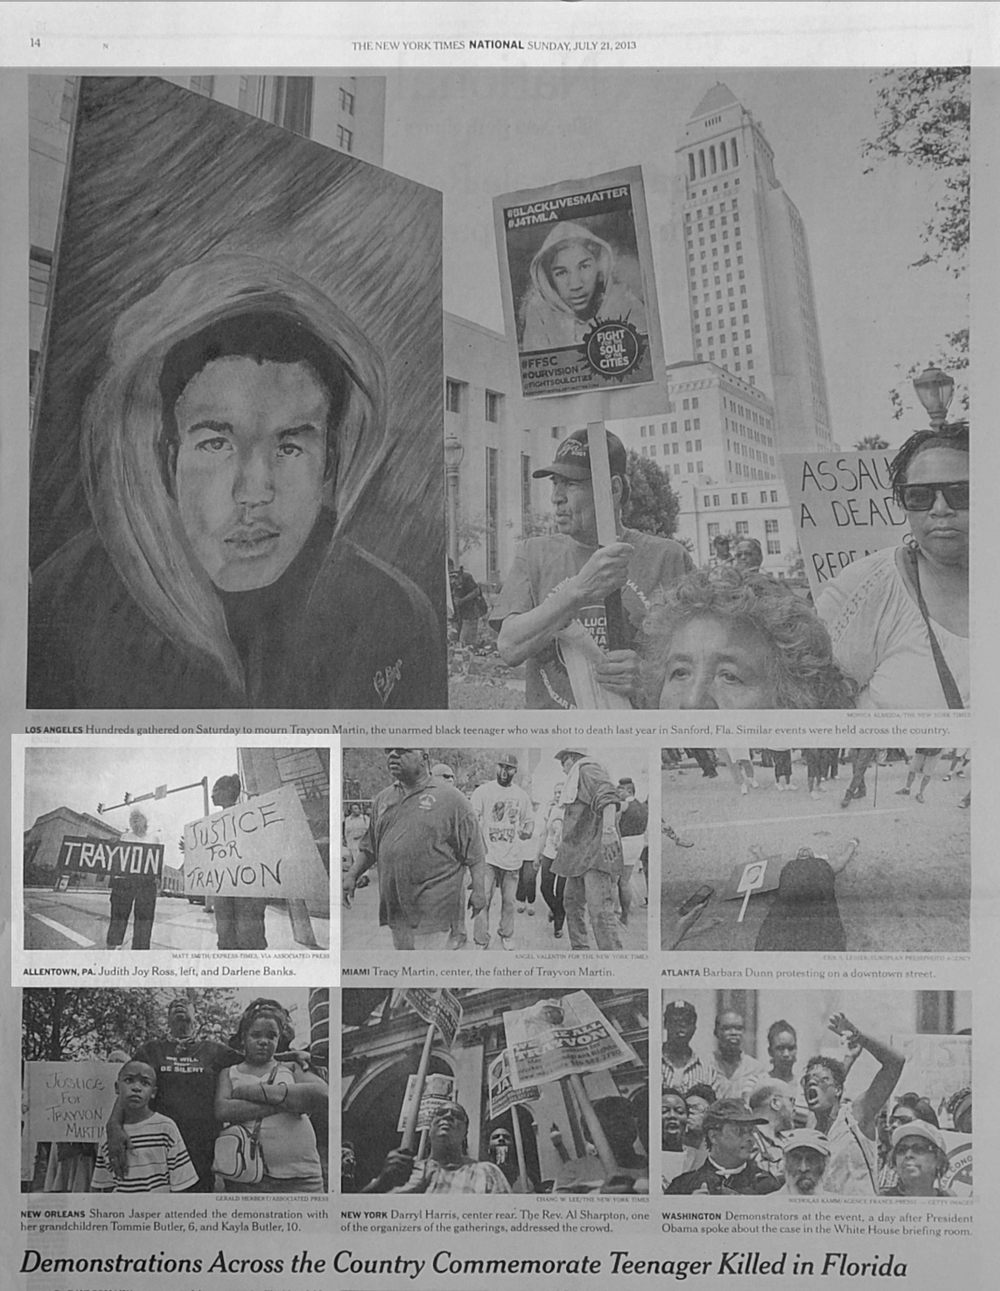 The New York Times, Sunday, July 21st, 2013. Community members, including photographer Judith Joy Ross, attend a 'Justice for Trayvon' national day of action vigil in Allentown appeared in a regional edition of Demonstrations went on in cities across the country on that Saturday.